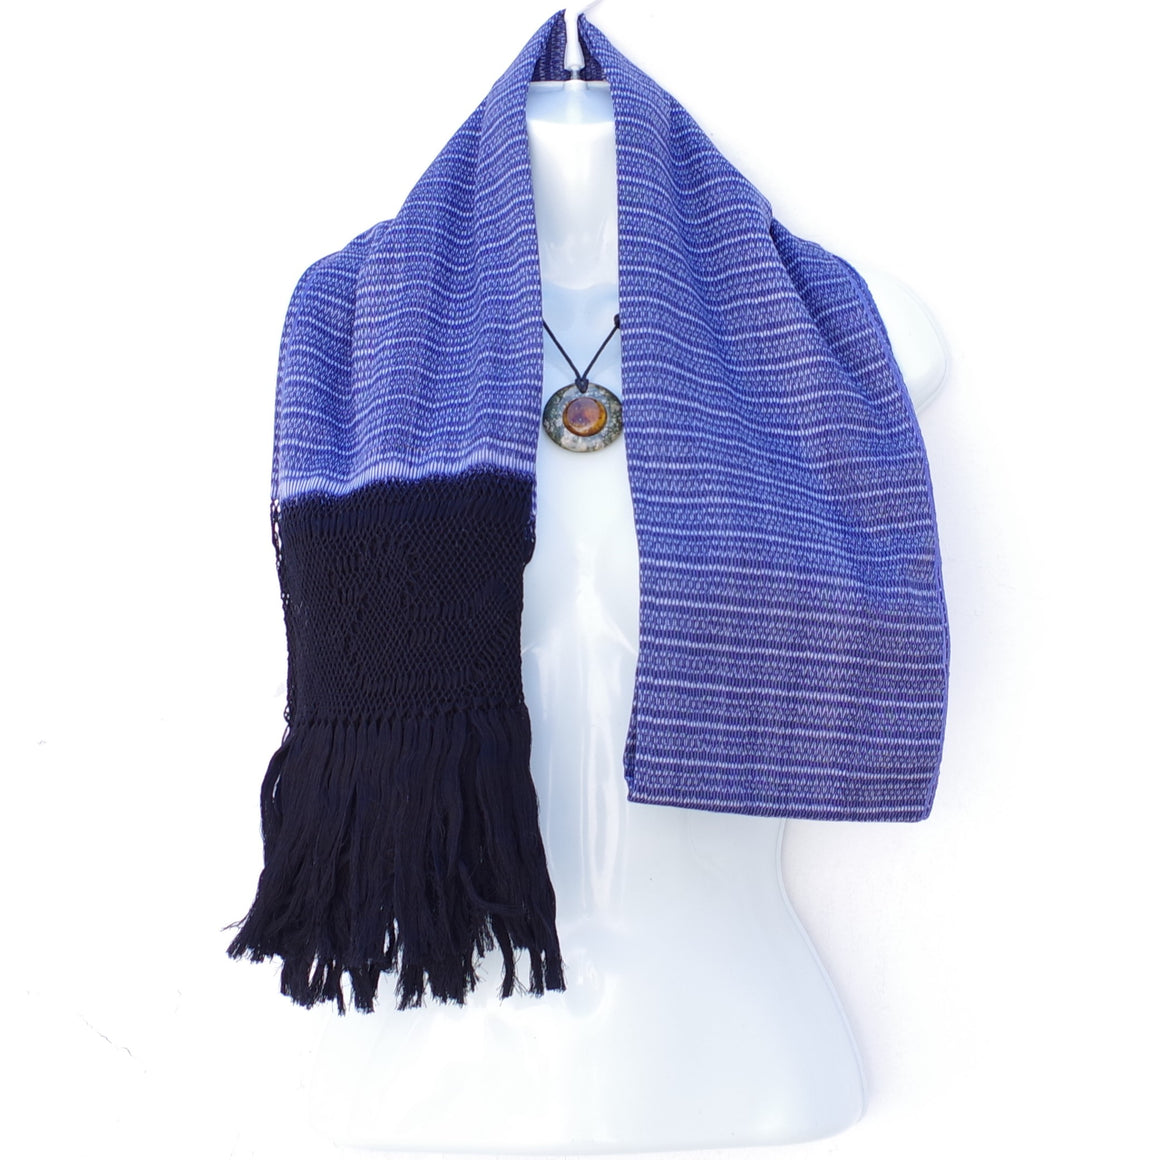 Mayan Copal Mexican Handwoven Blue Rebozo Shawl Wrap Scarf Runner From Tenancingo